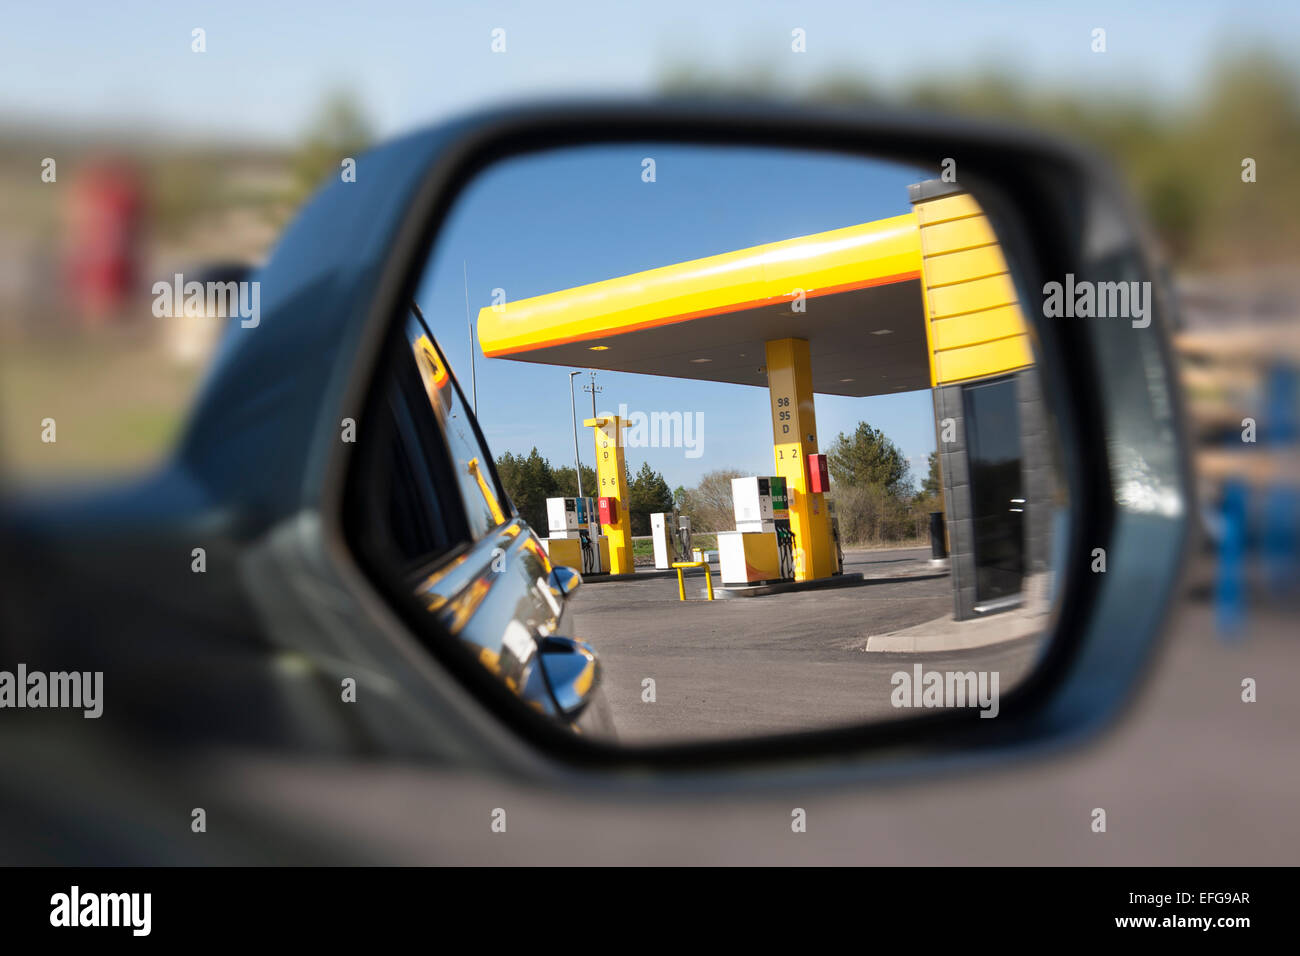 Reflection of gas station on vehicle side mirror. Selective focus. Petrol station with dispenser and pumps. - Stock Image